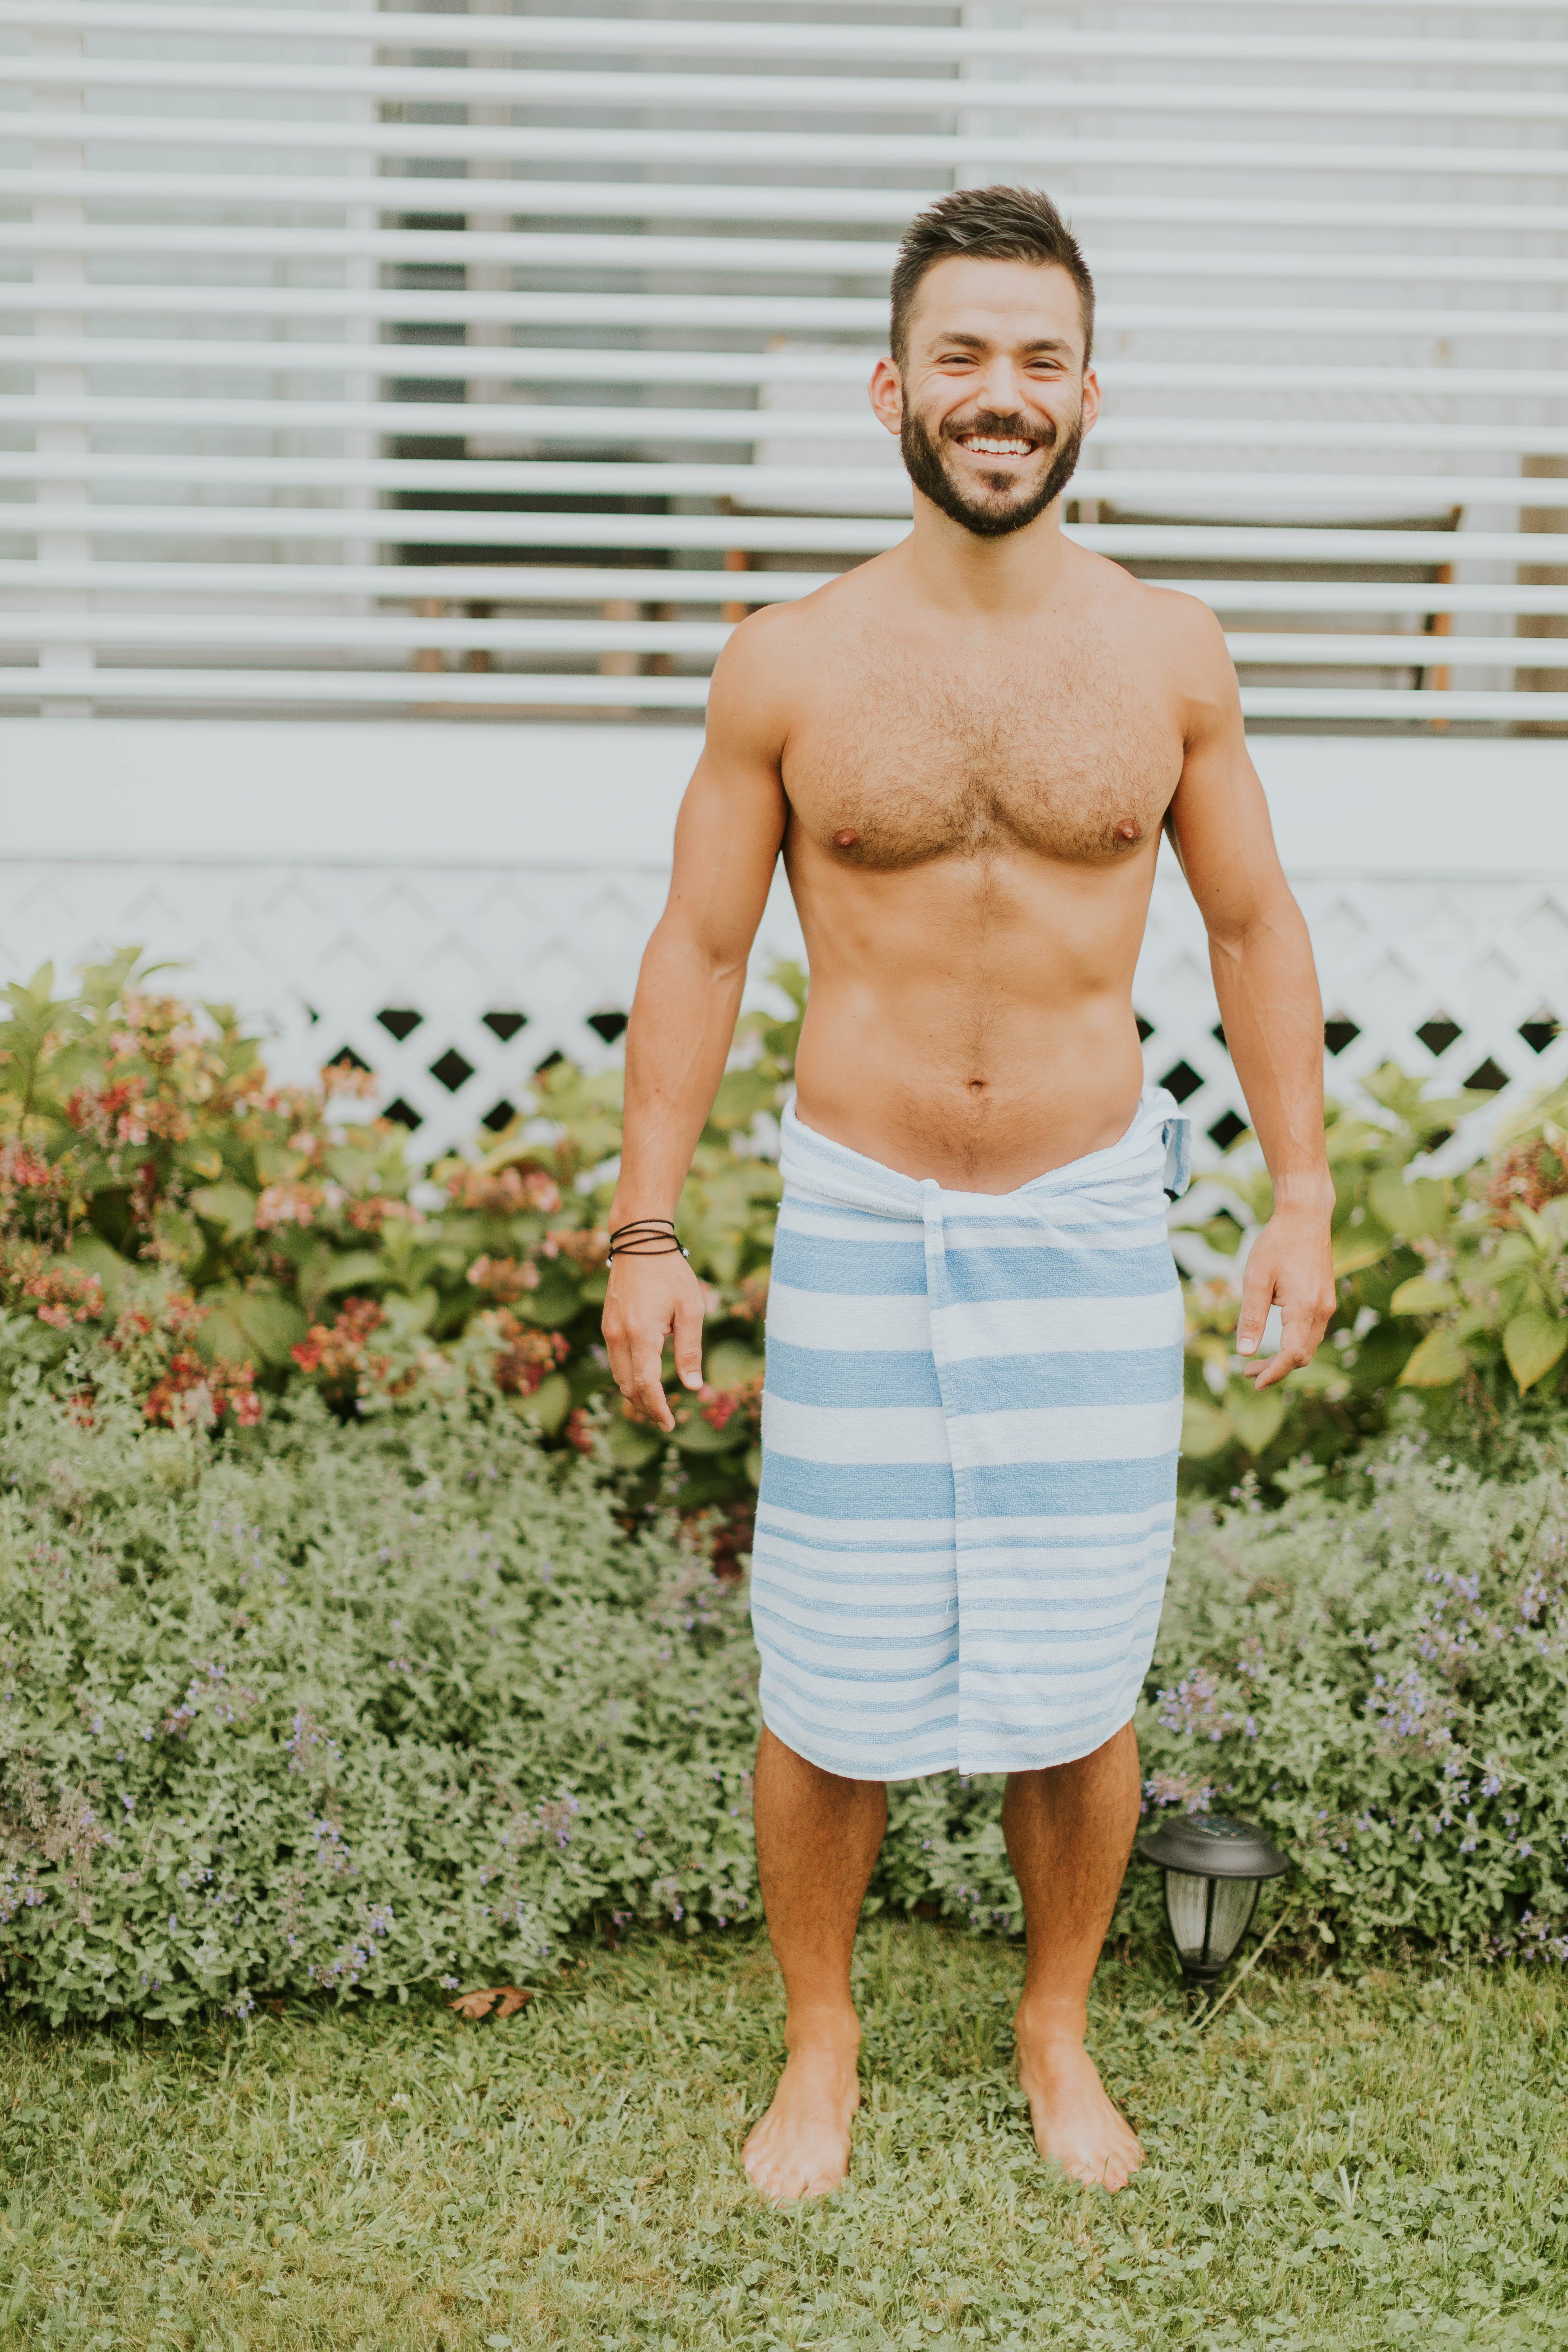 Man Standing With Towel On His Near Bush